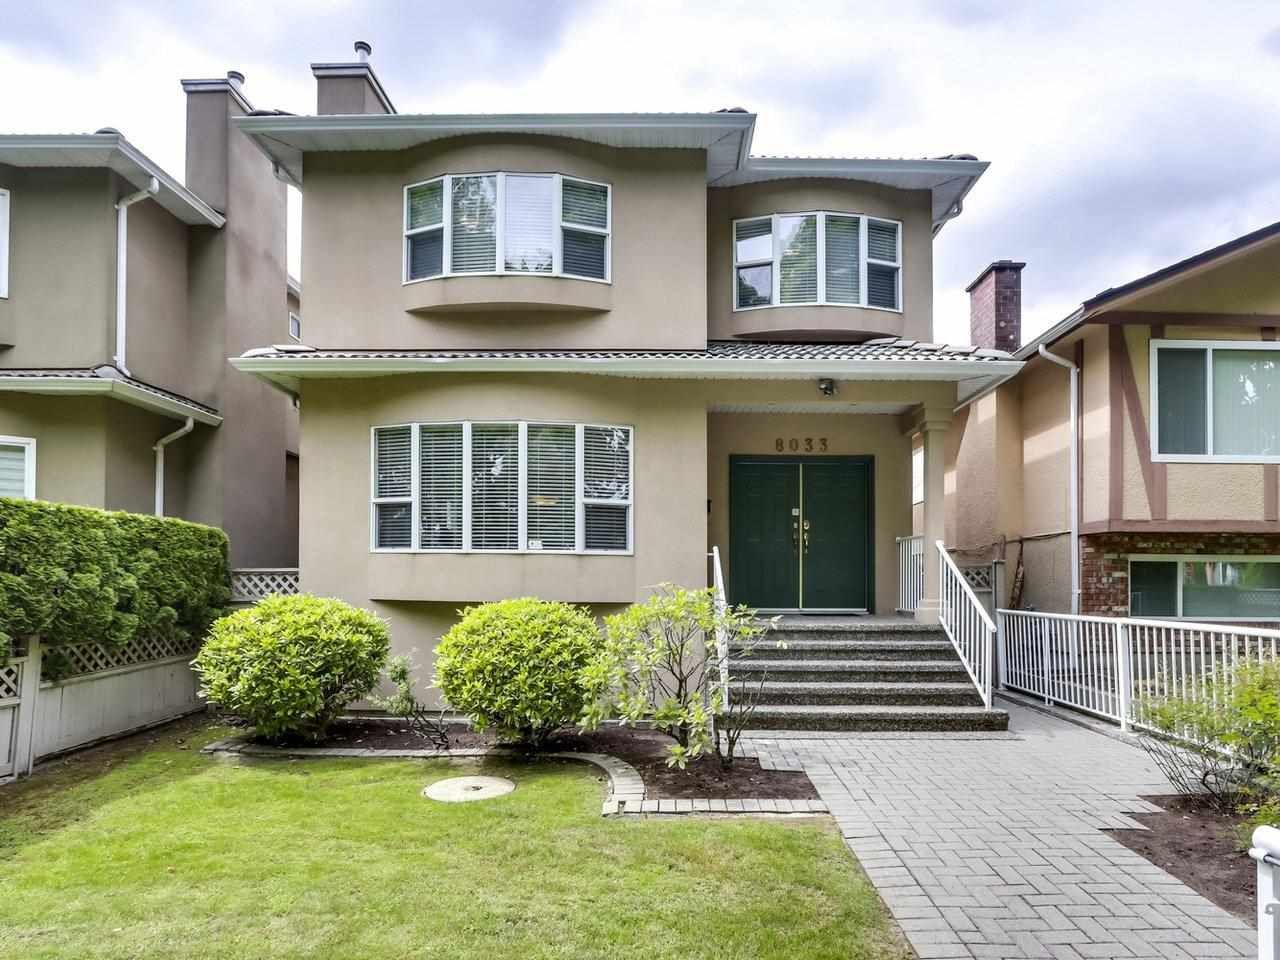 """Main Photo: 8033 HUDSON Street in Vancouver: Marpole House for sale in """"MARPOLE"""" (Vancouver West)  : MLS®# R2586835"""